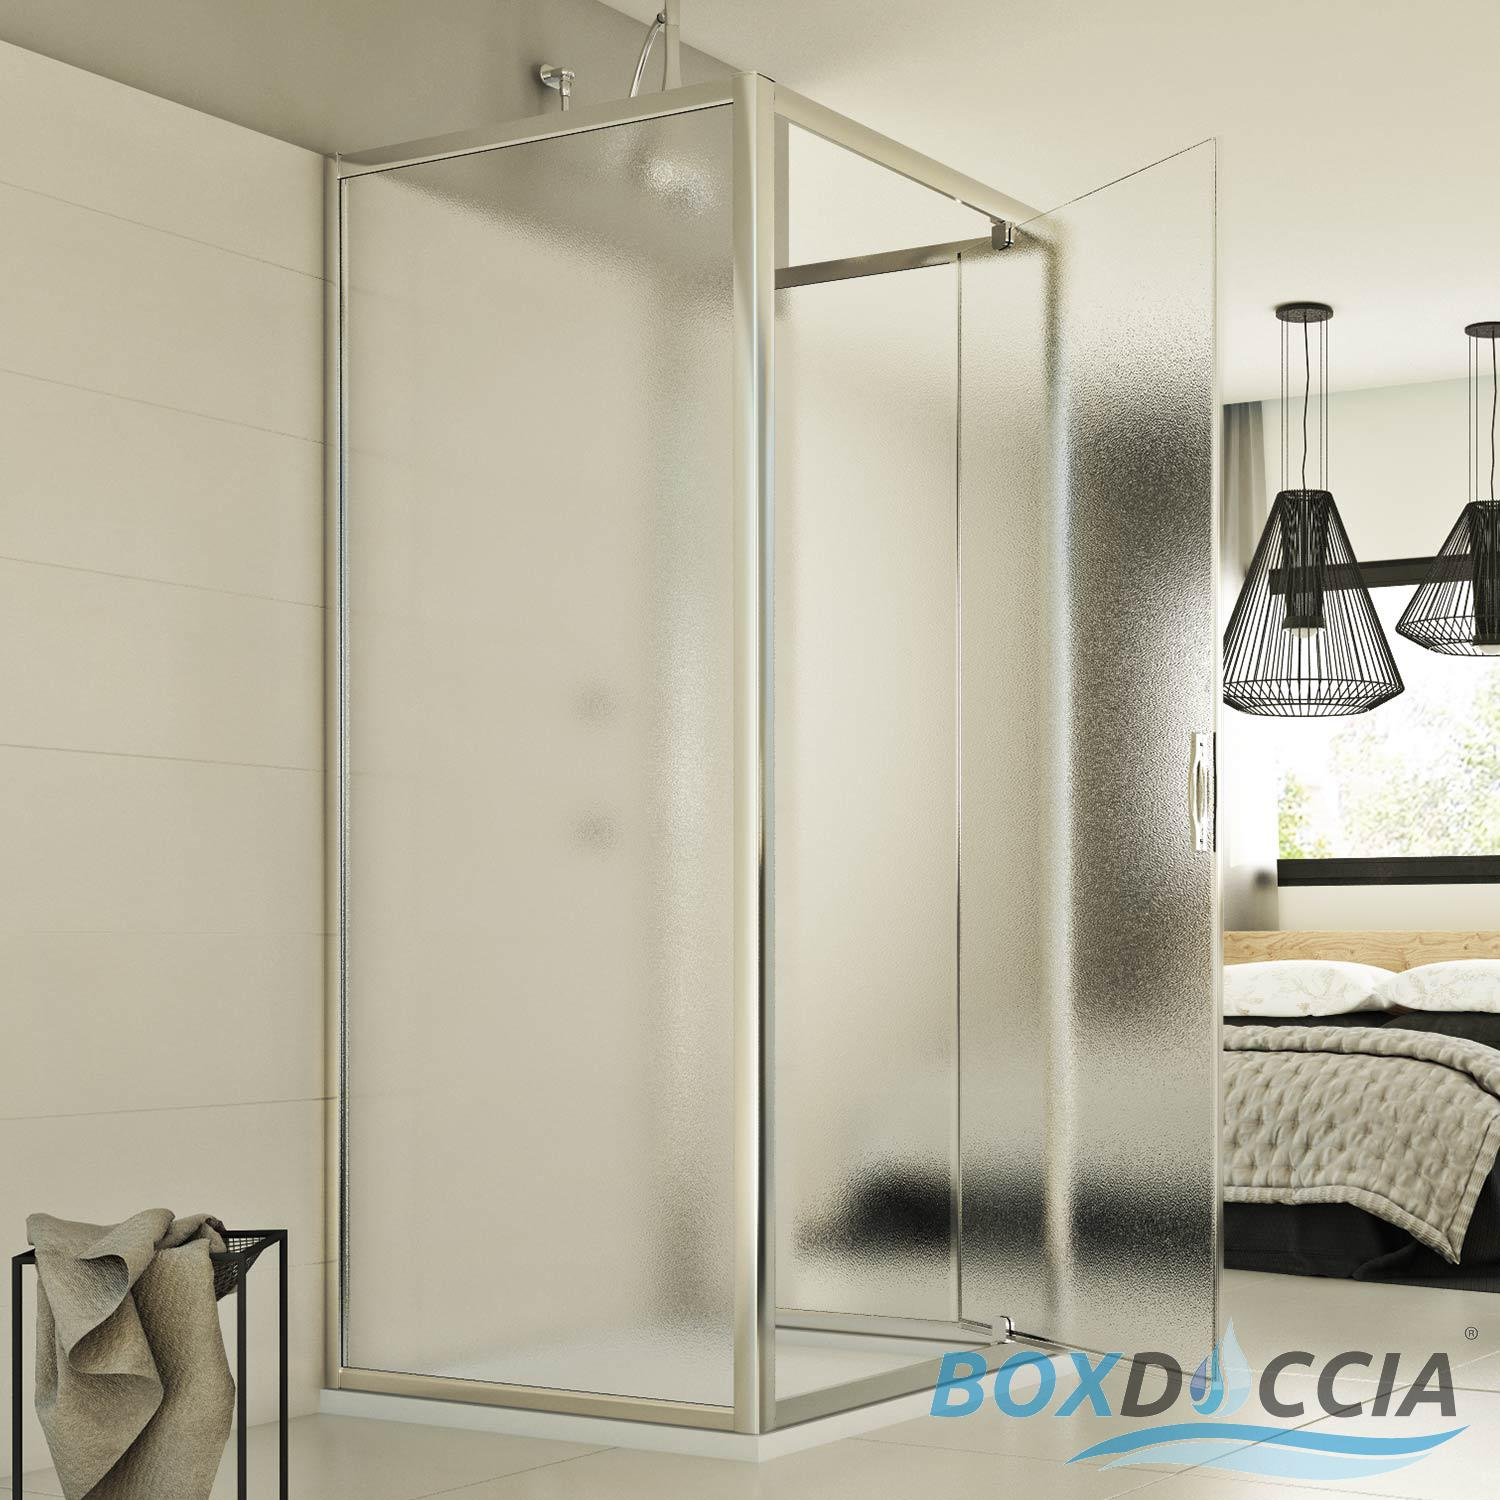 cabine de douche paroi de douche 3 parois ouverture 1 porte pivot verre carr ebay. Black Bedroom Furniture Sets. Home Design Ideas